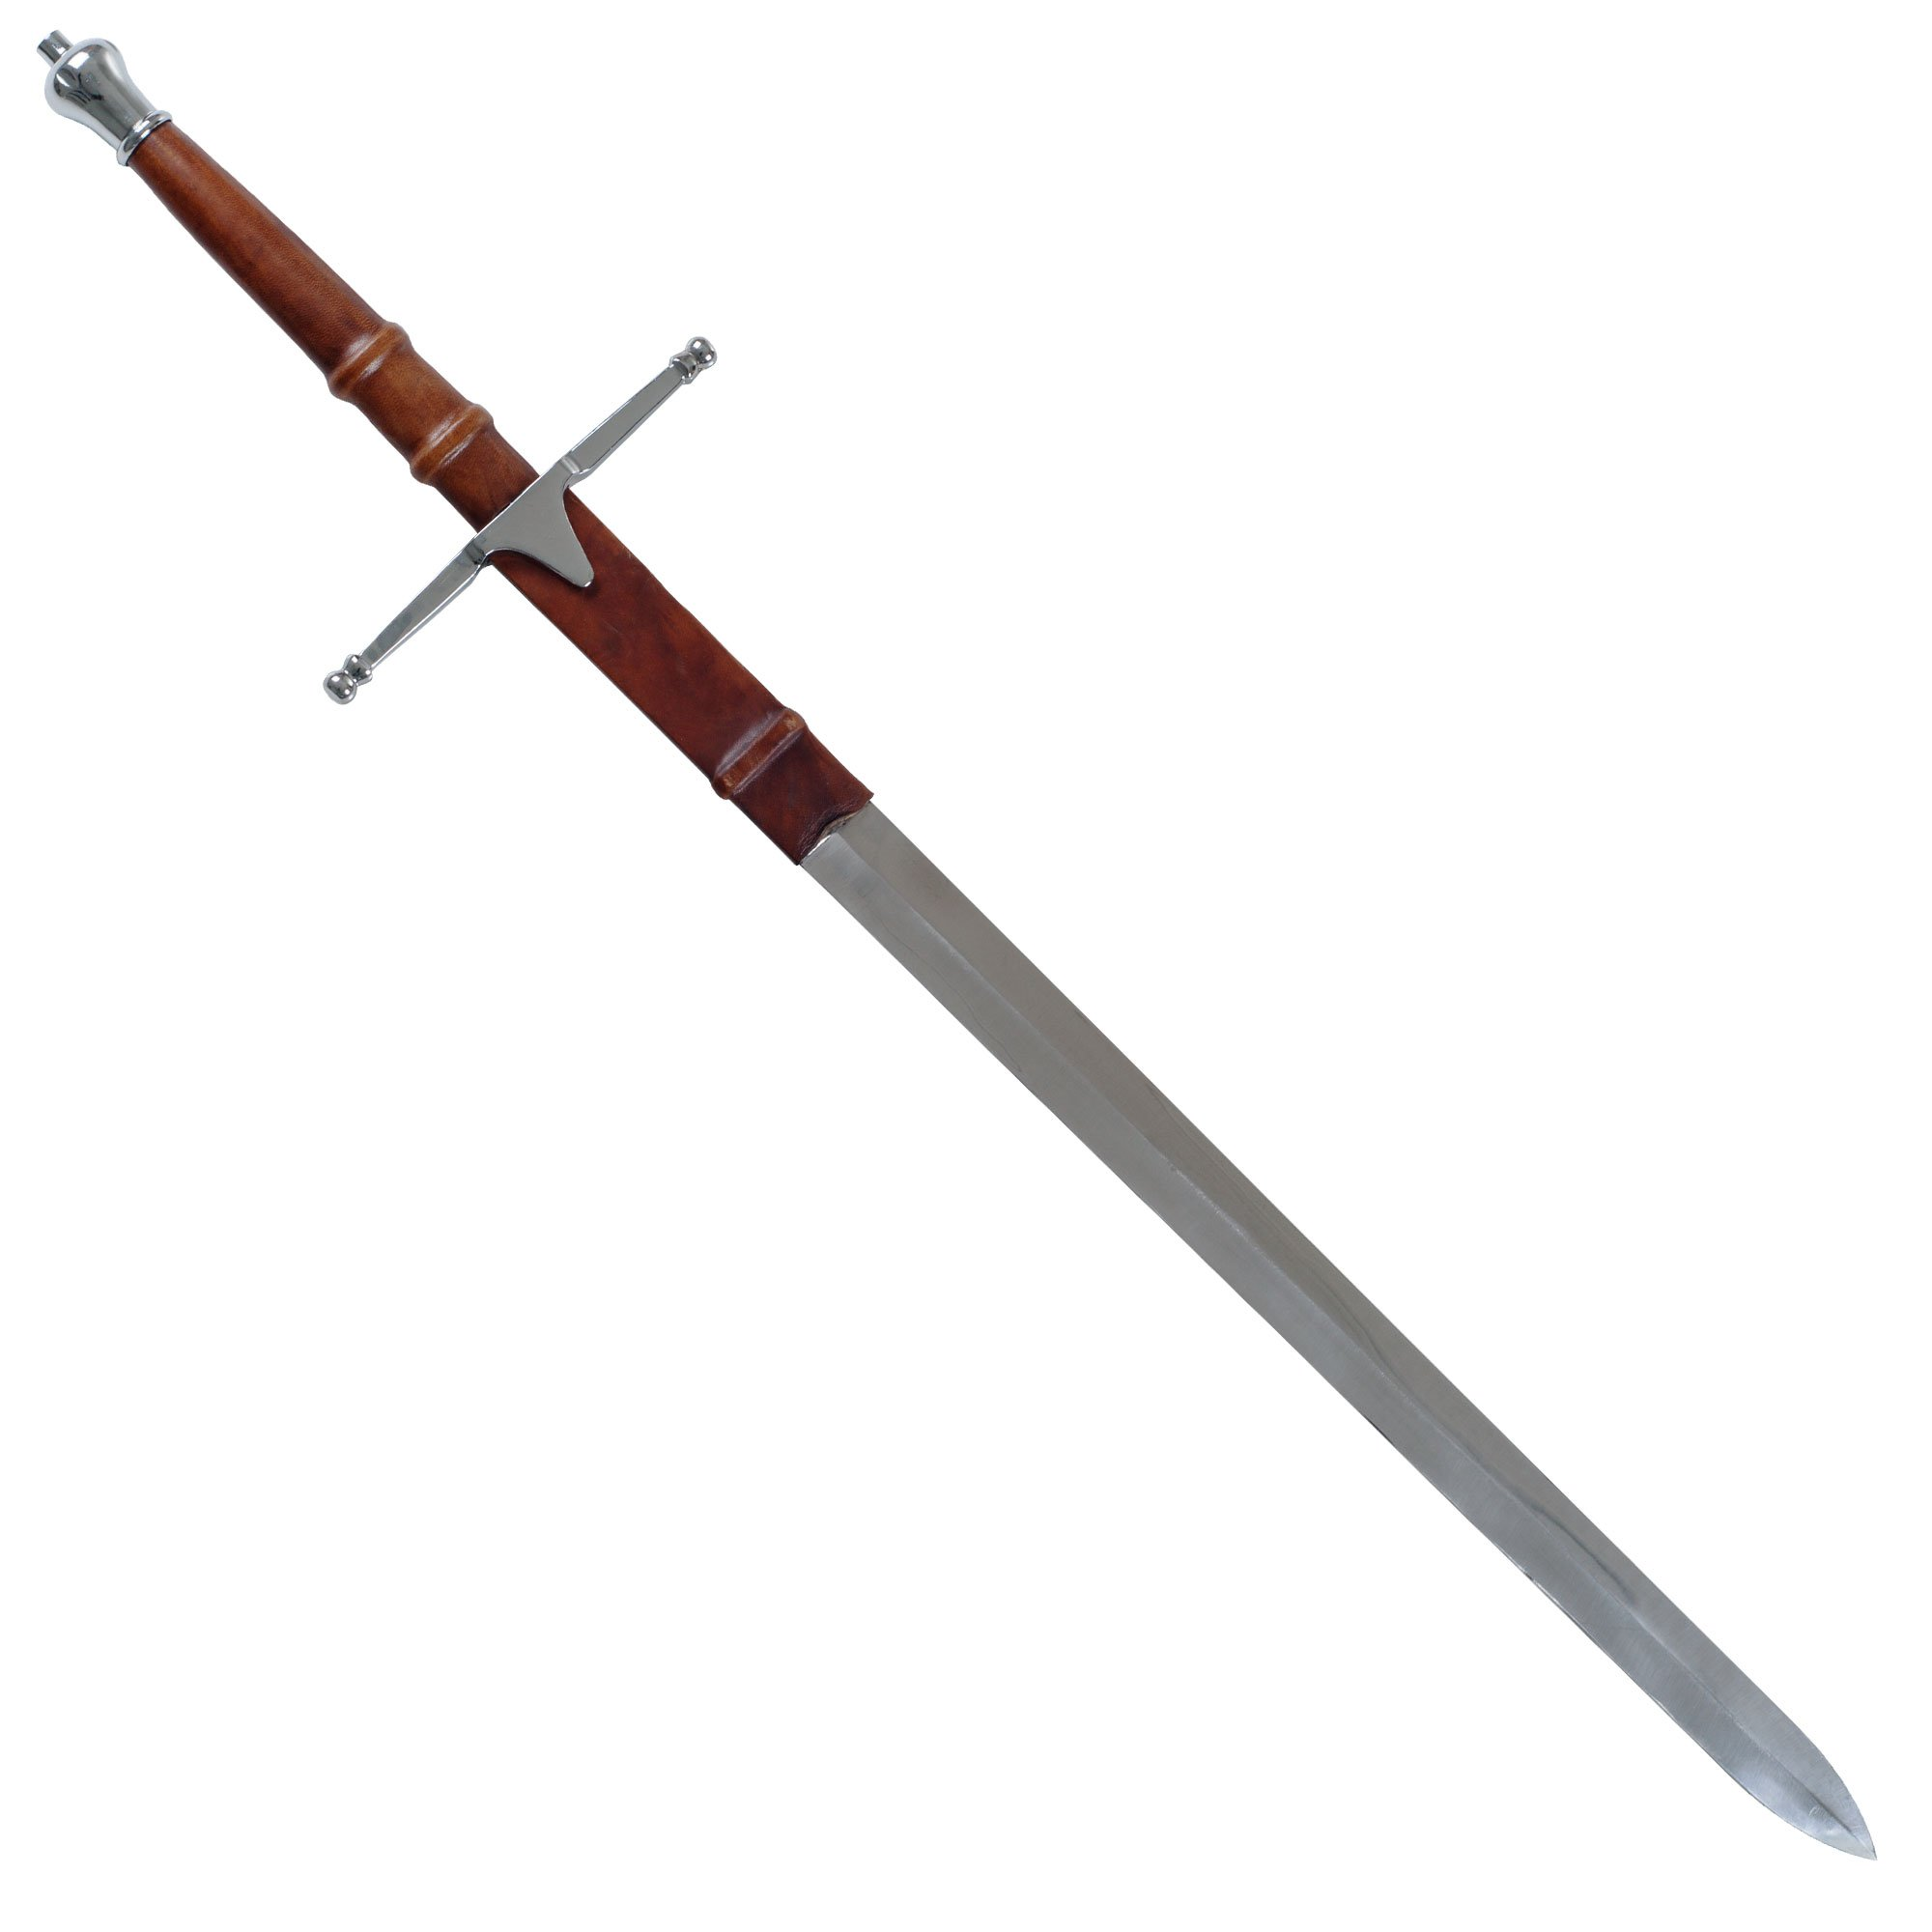 Whetstone Cutlery William Wallace Medieval Sword with Sheath, Silver by Whetstone Cutlery